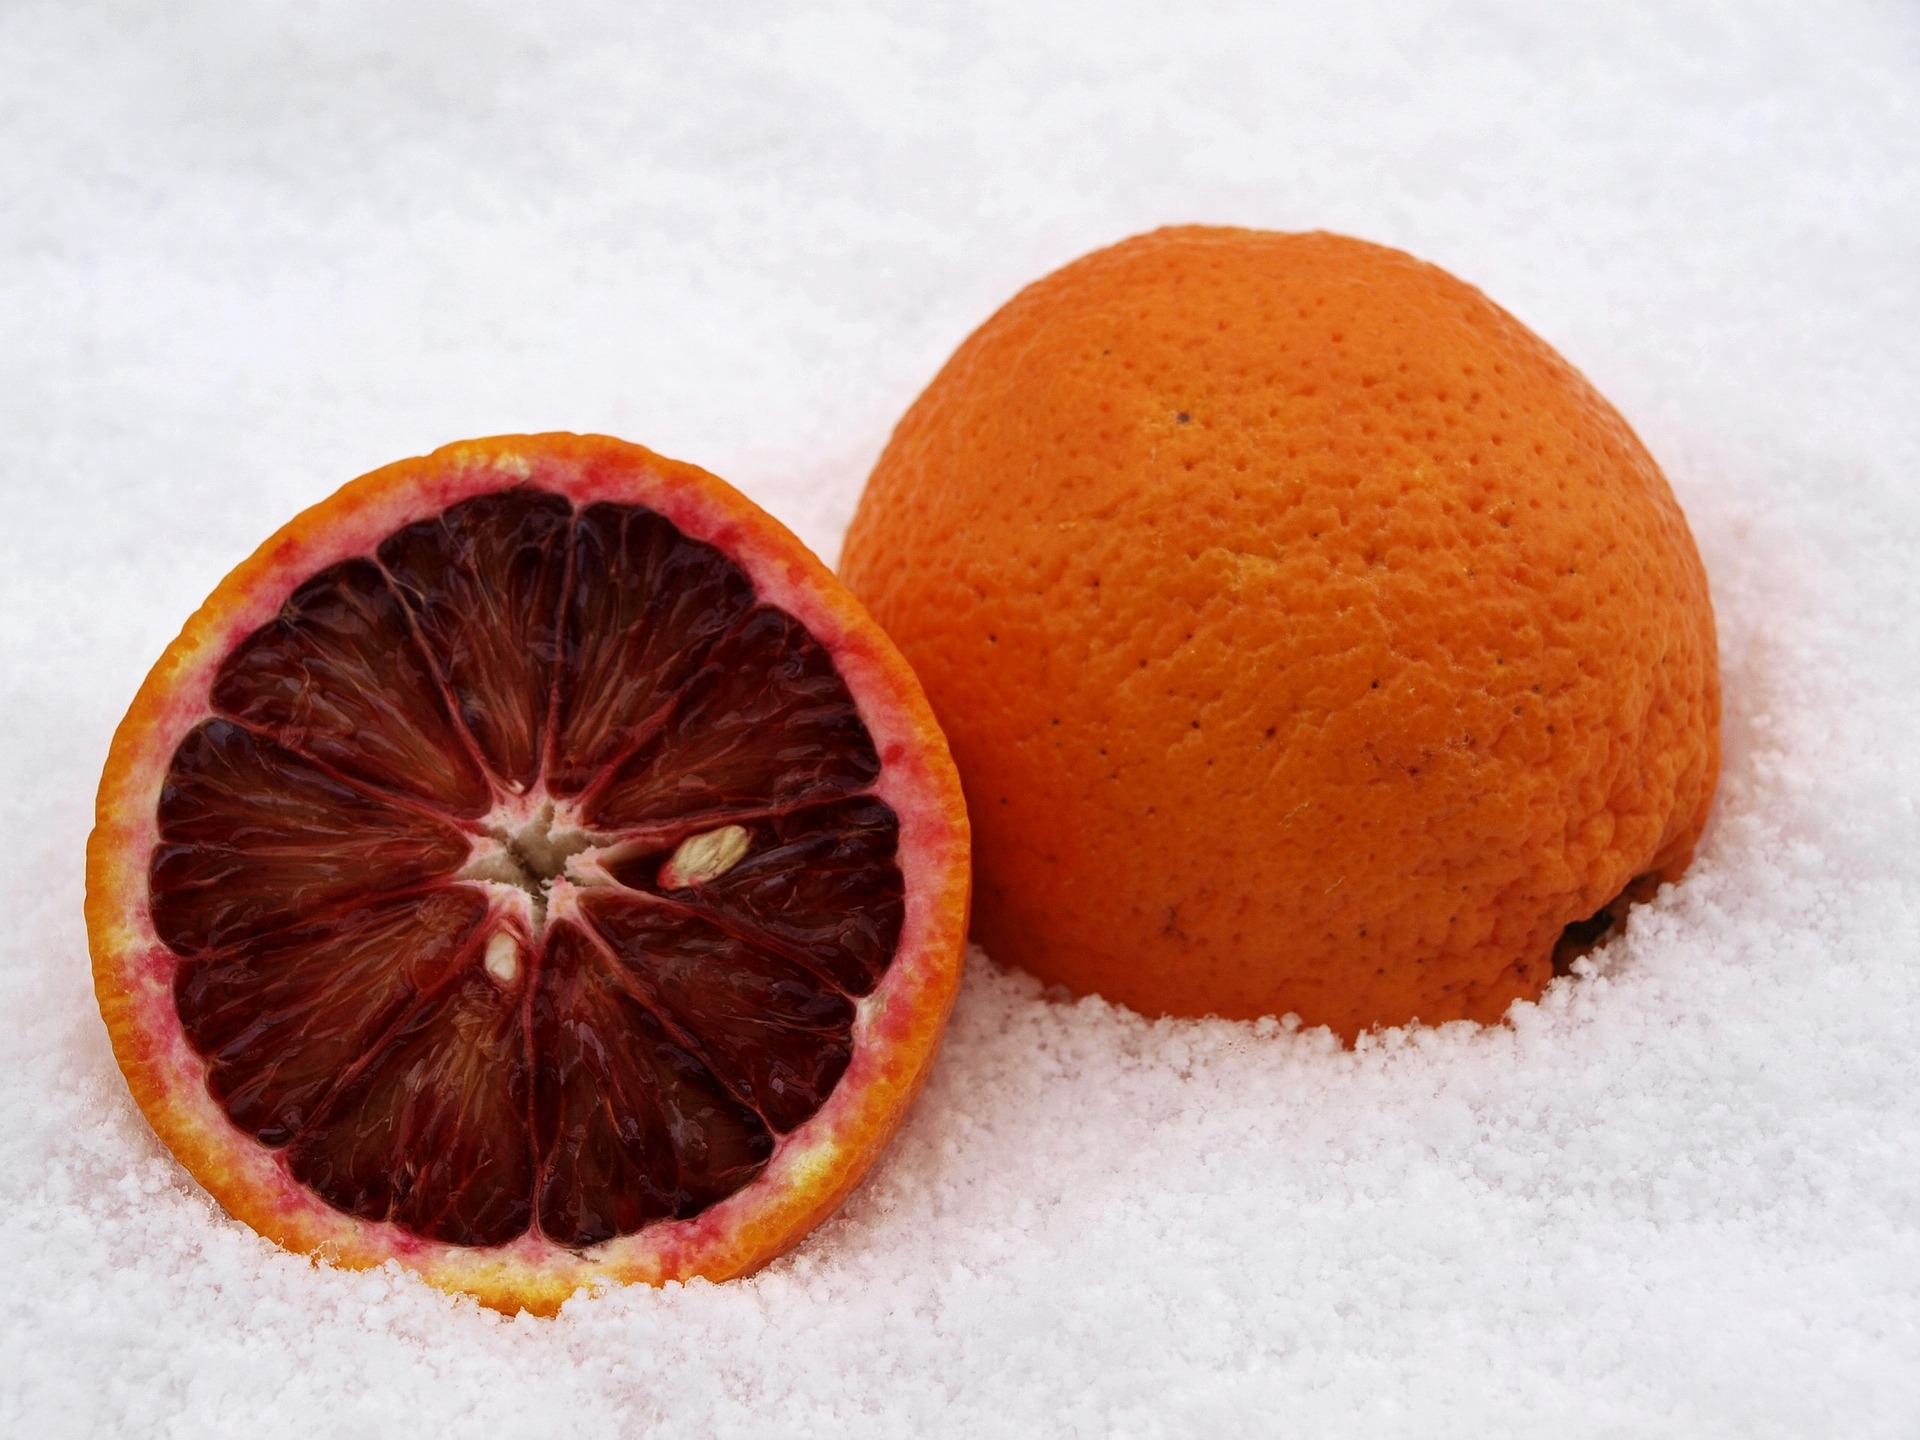 blood-orange-257902_1920.jpg